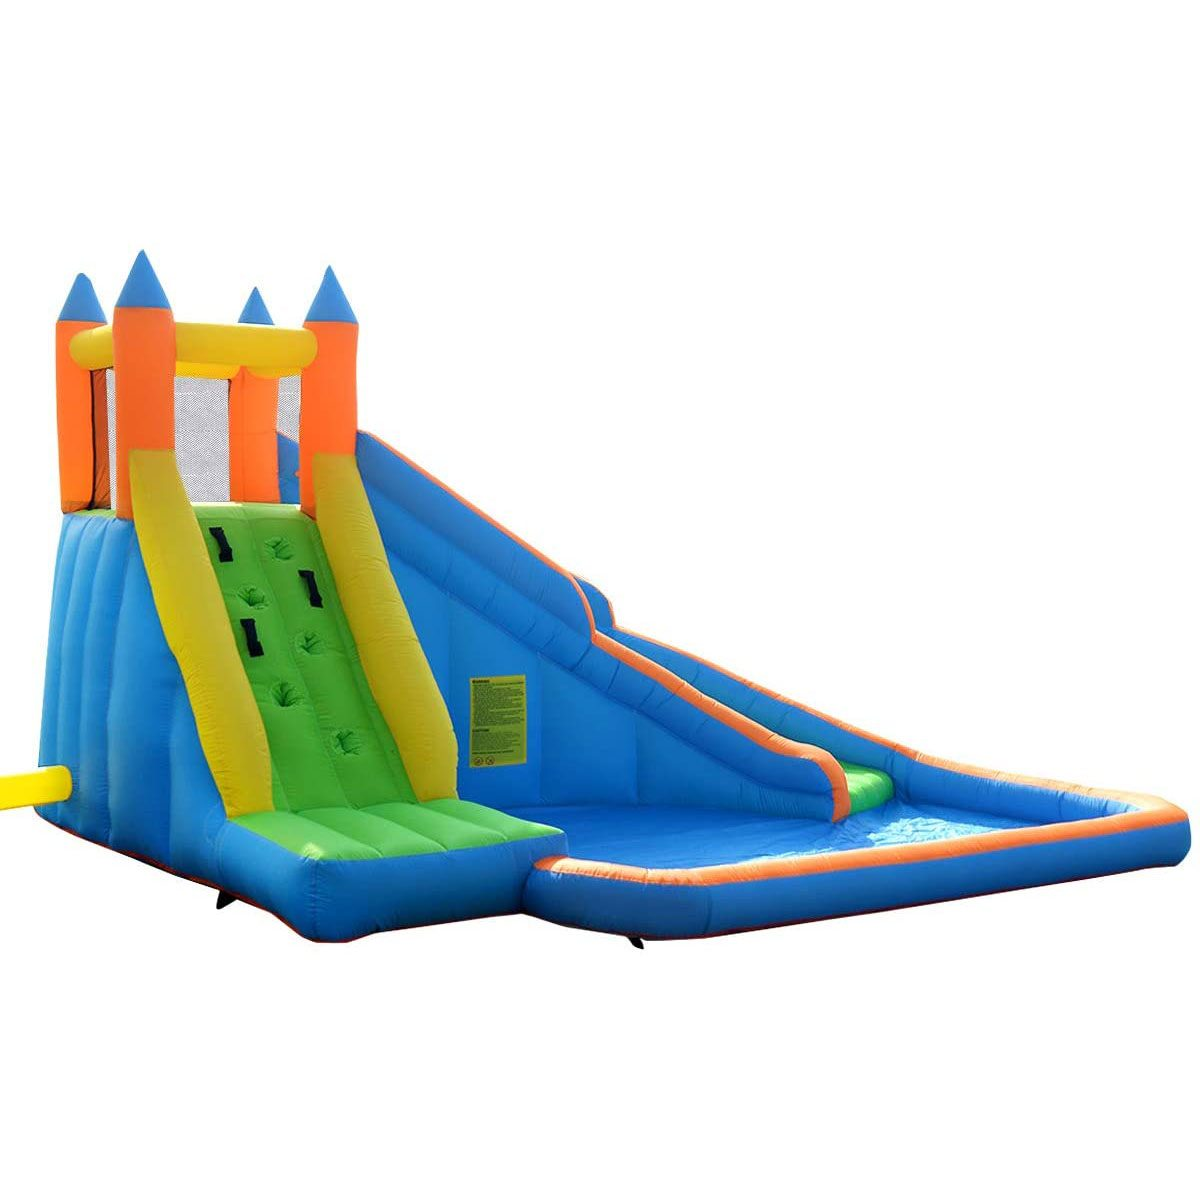 Kiddie pool with castle bouncy house